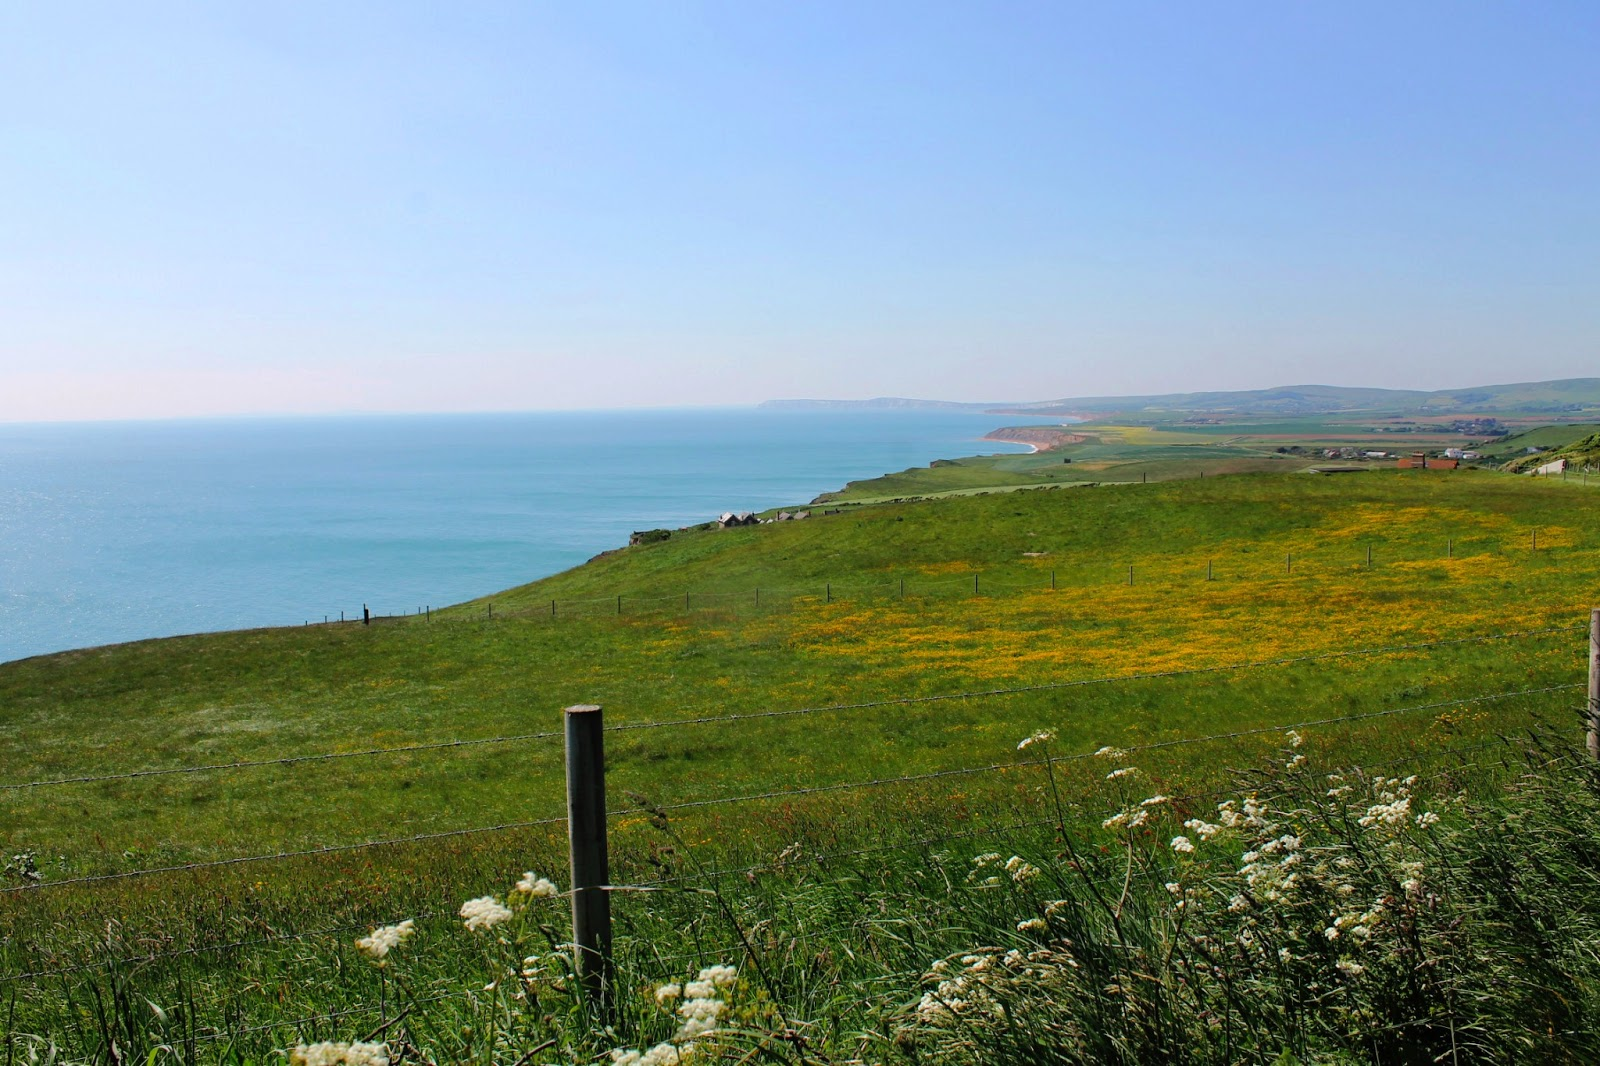 isle of wight scenery view nature cliffs sea fields